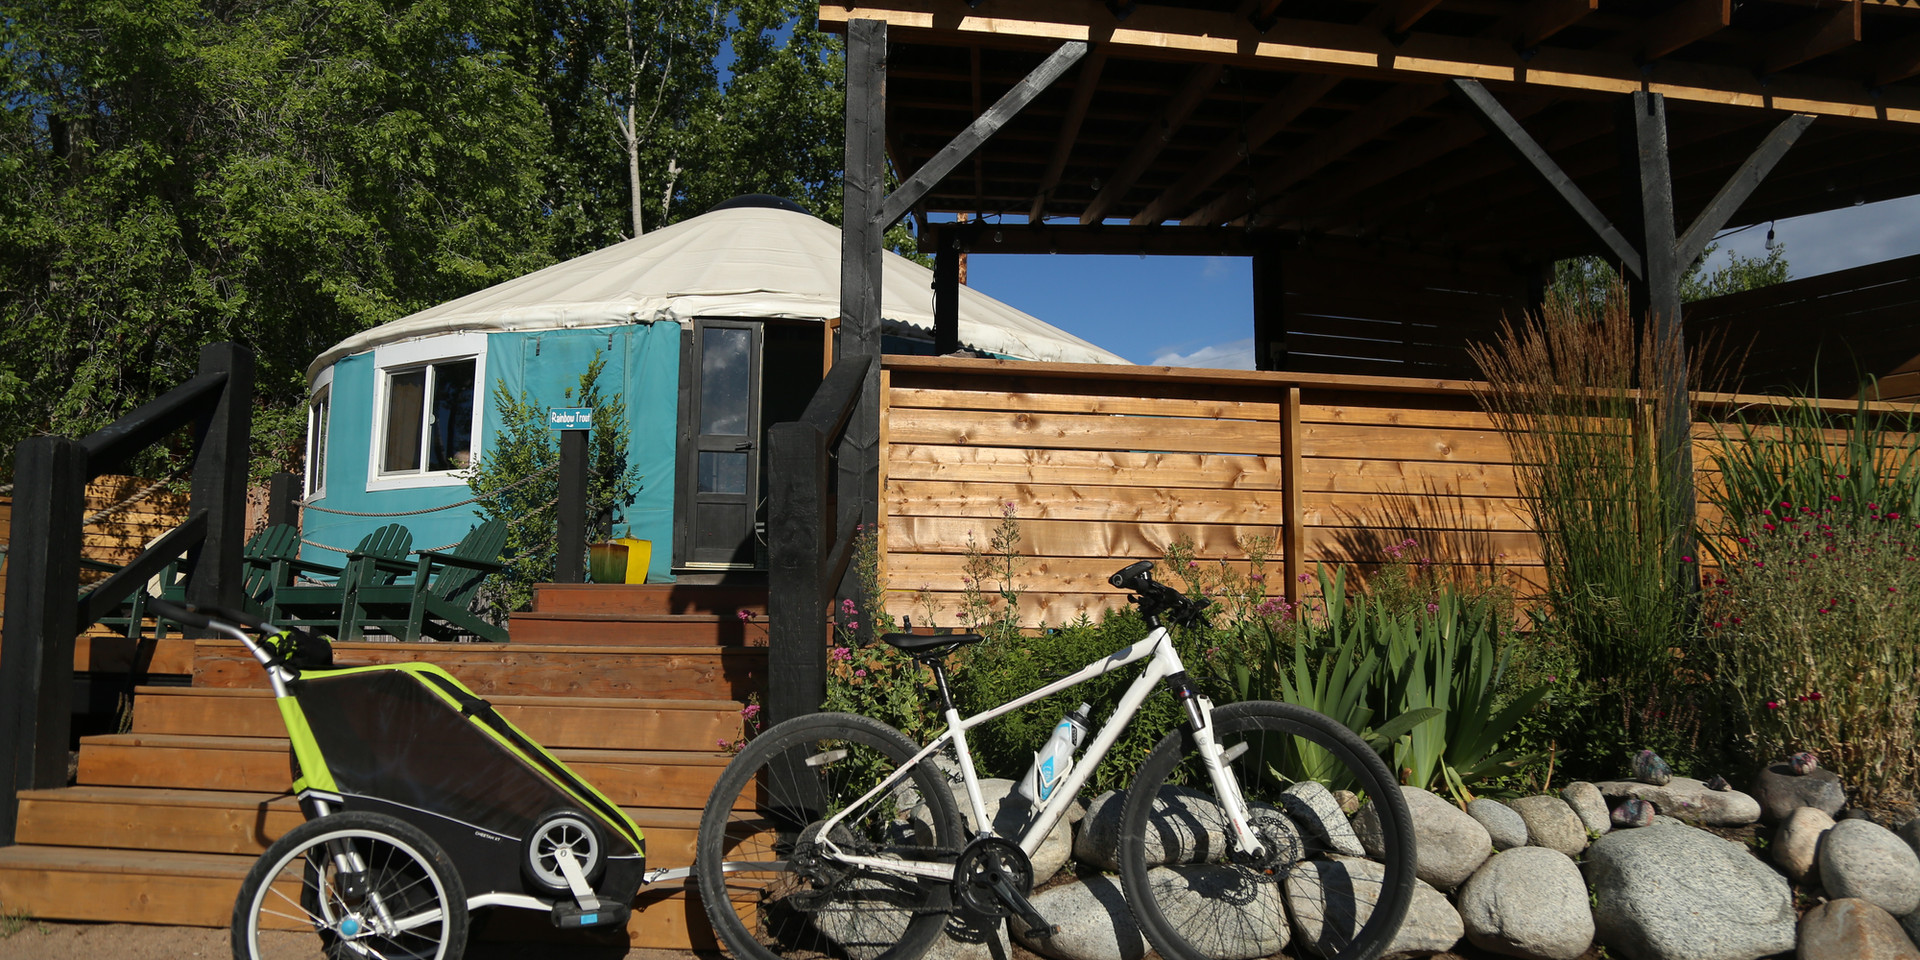 biking resort, adventure camping